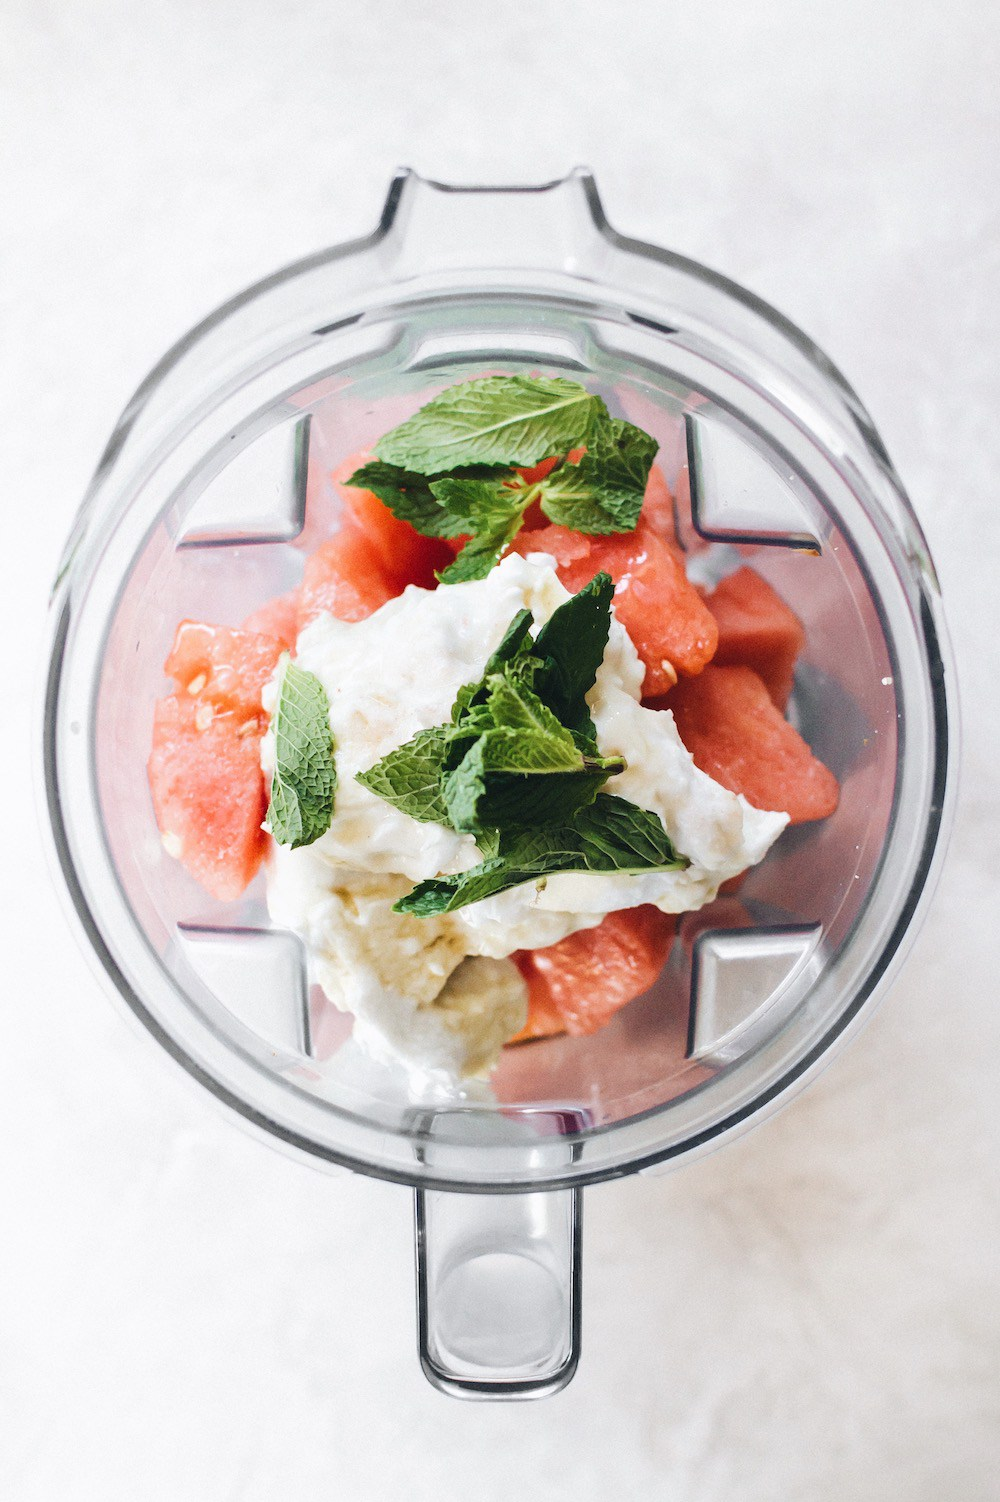 Watermelon-Mint-Ice-Cream-Vitamix.jpg